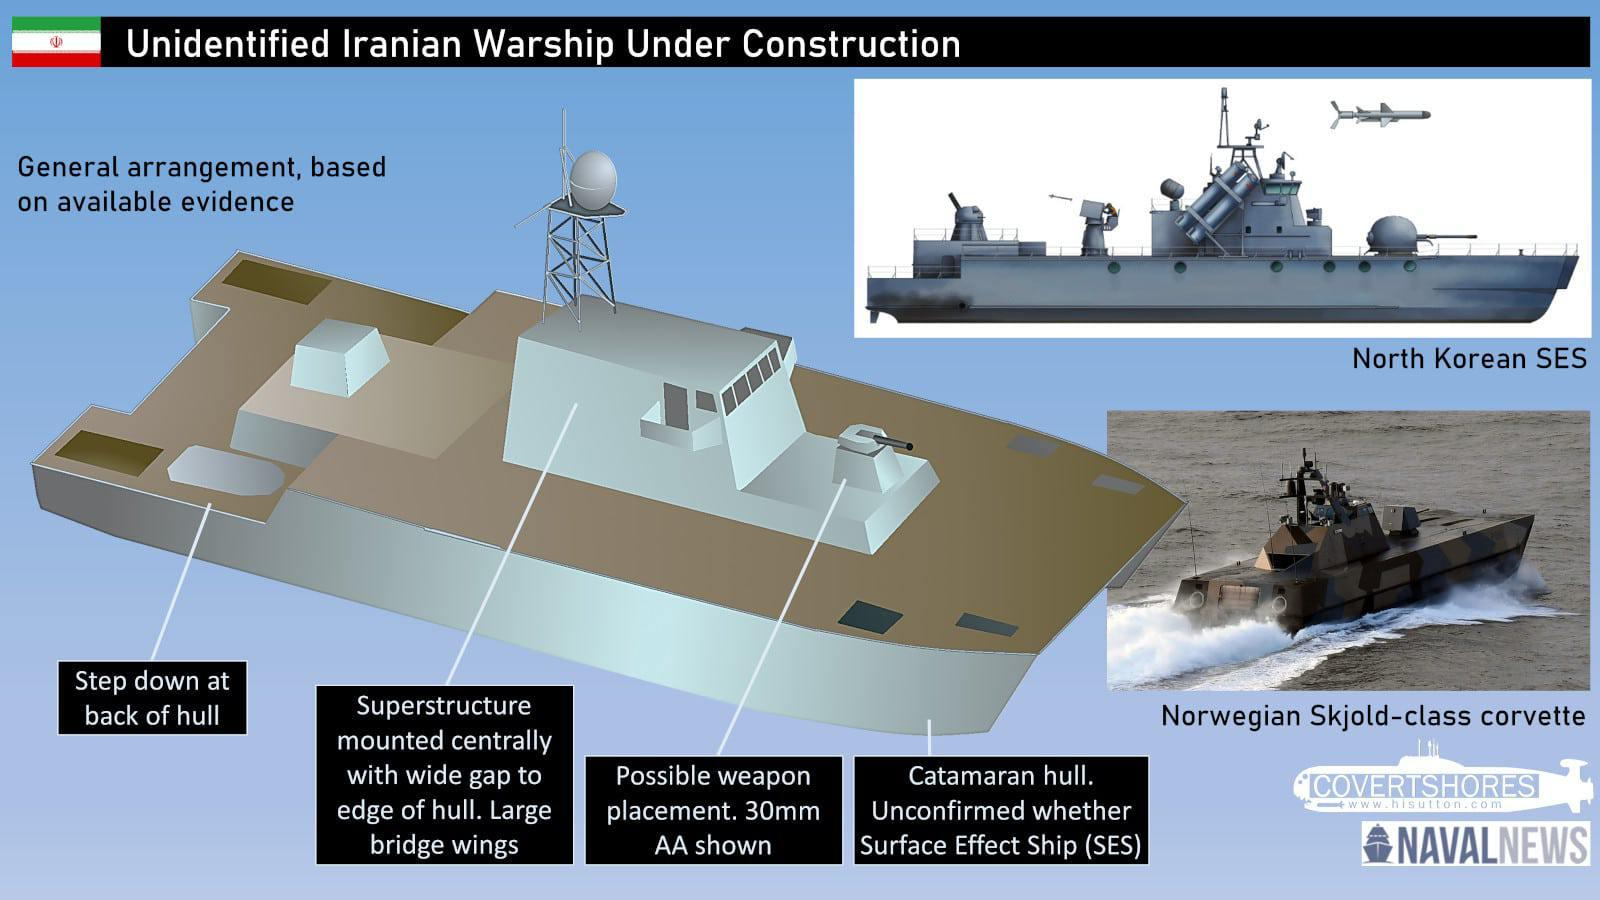 ifmat - Mystery warship seen in Iran may be a completely new type